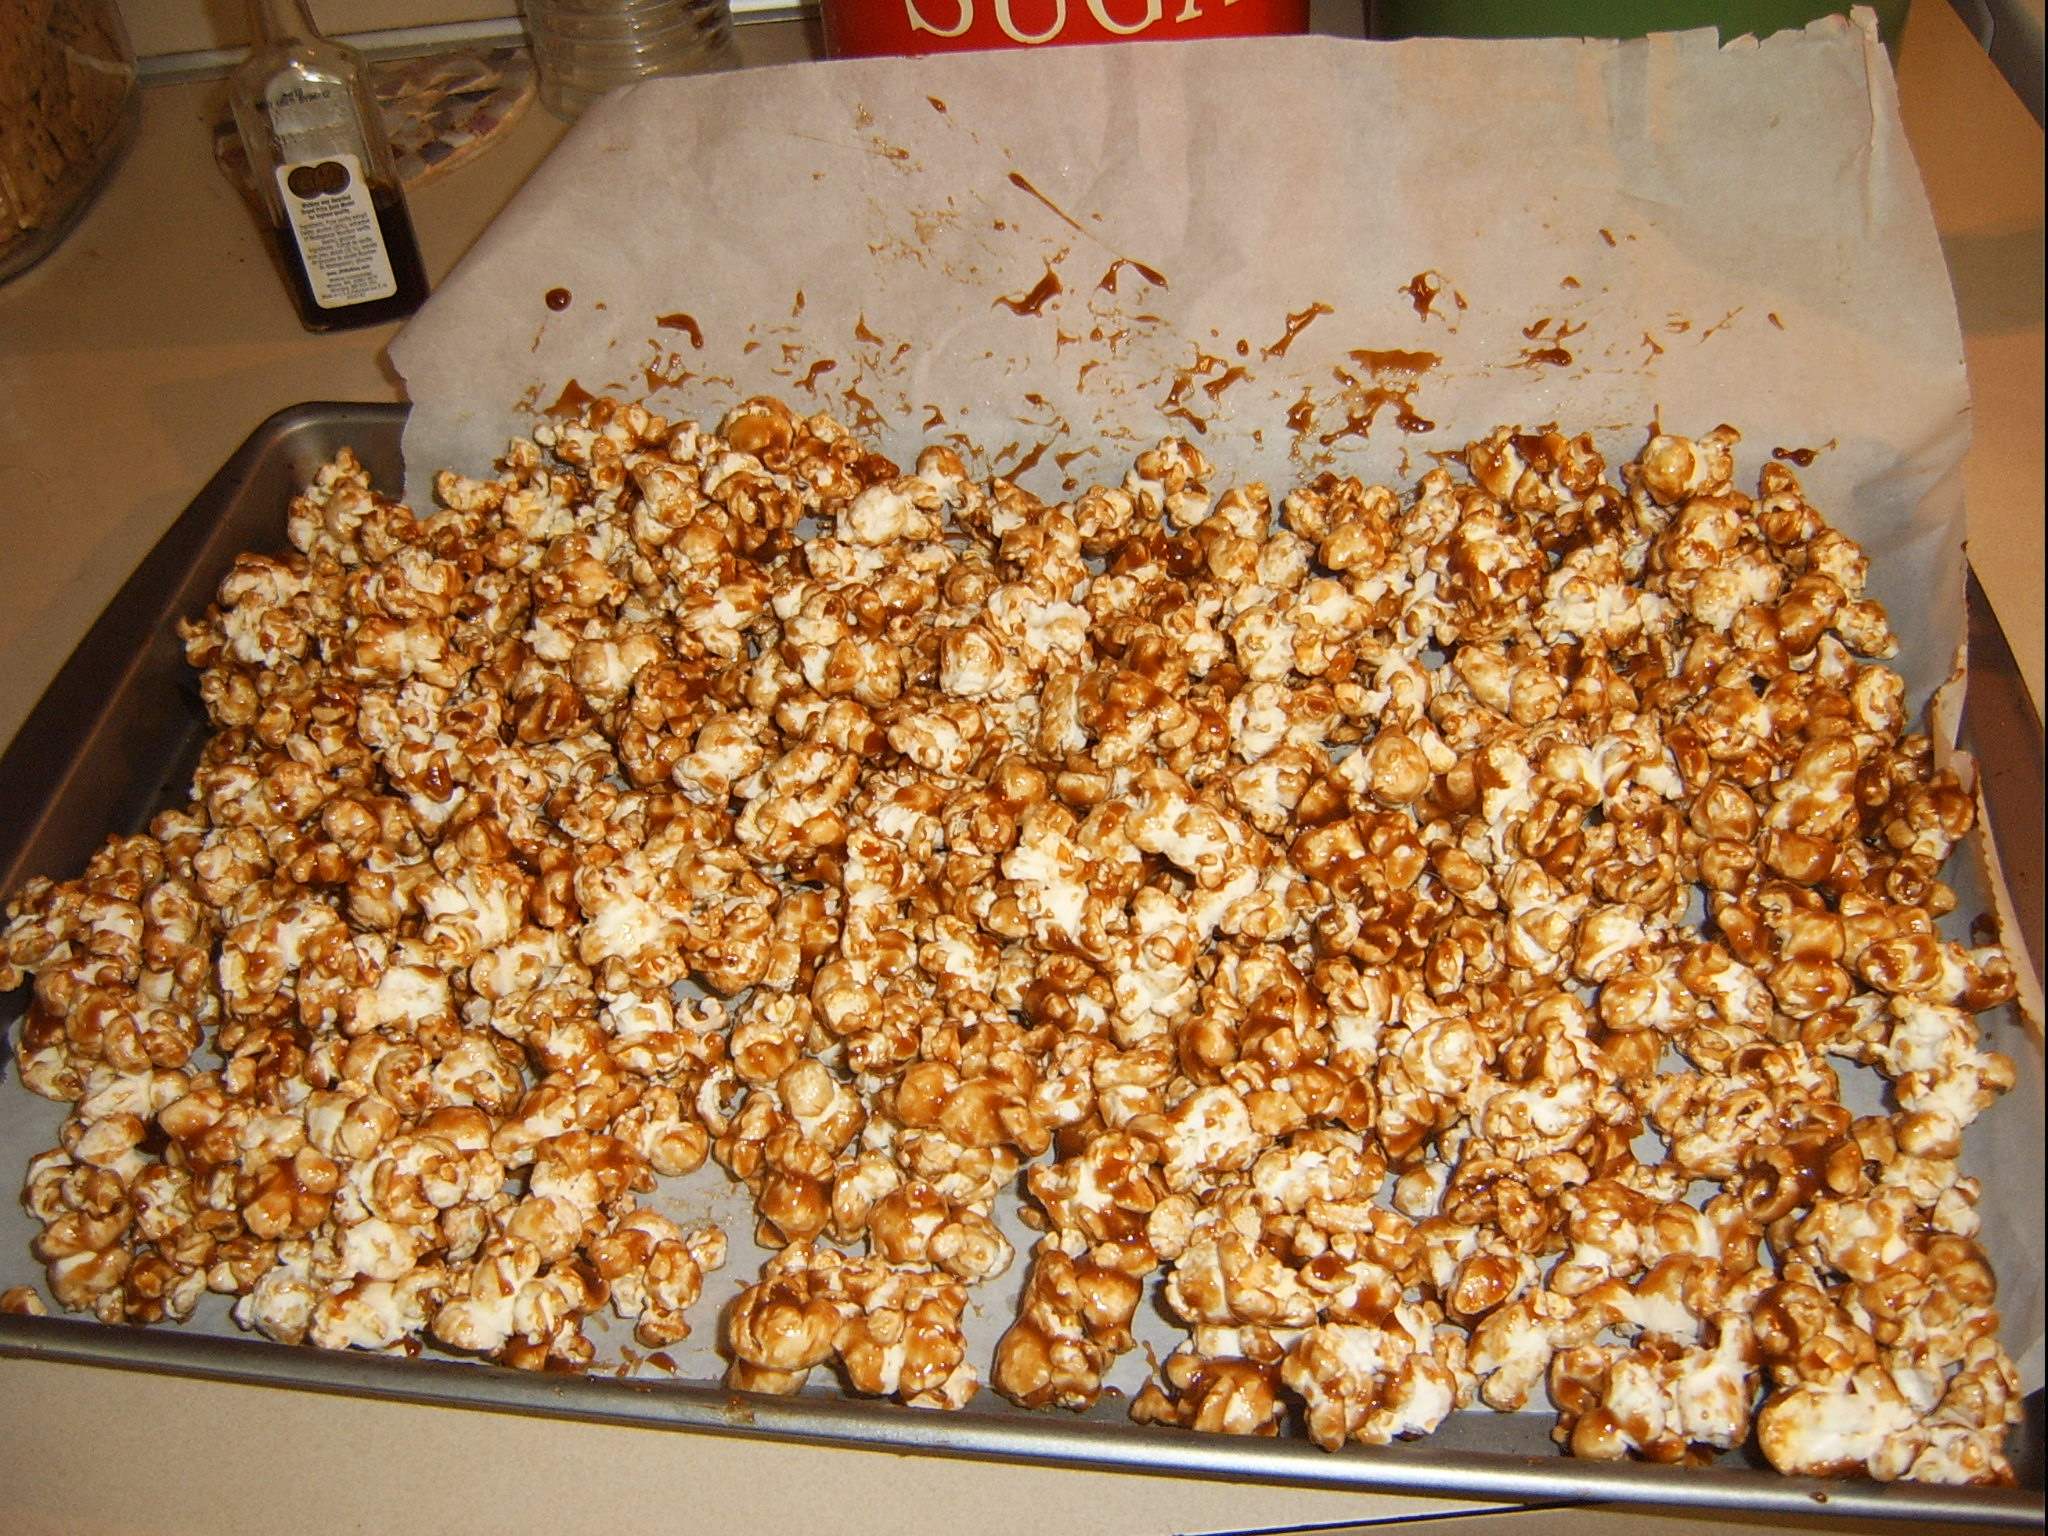 First batch of Caramel Popcorn